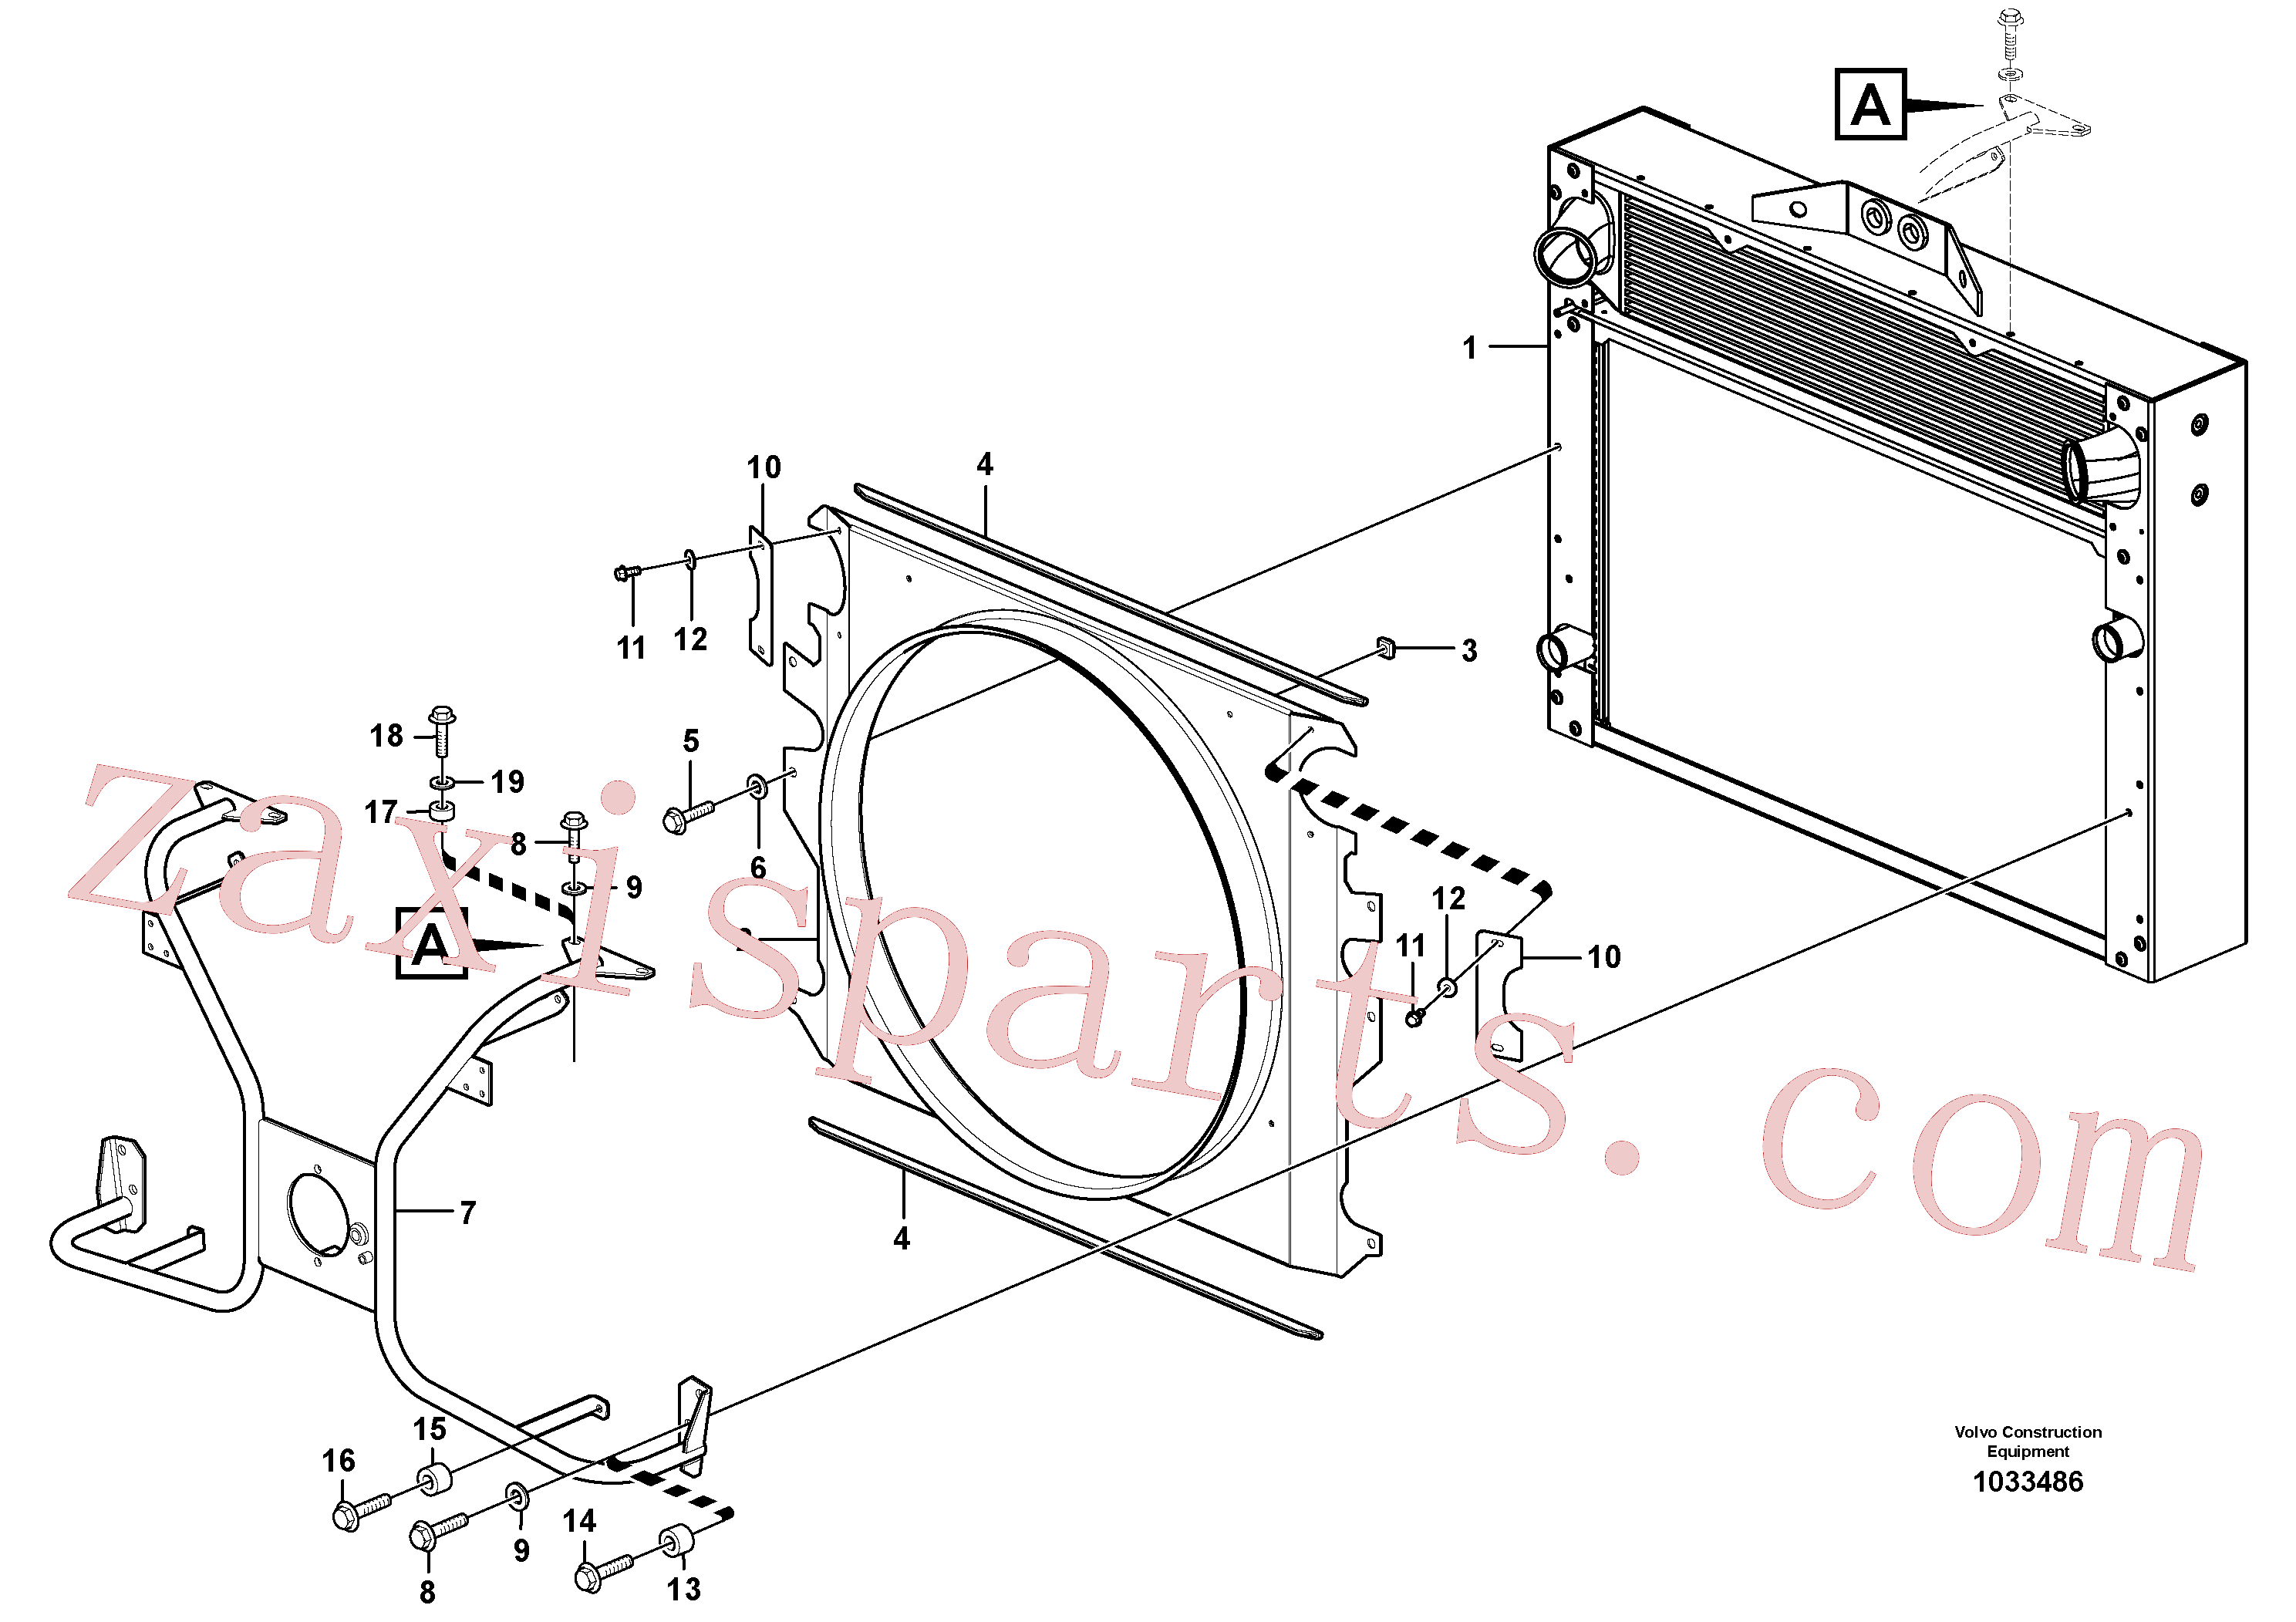 VOE11130278 for Volvo Fan shroud with fitting parts(1033486 assembly)